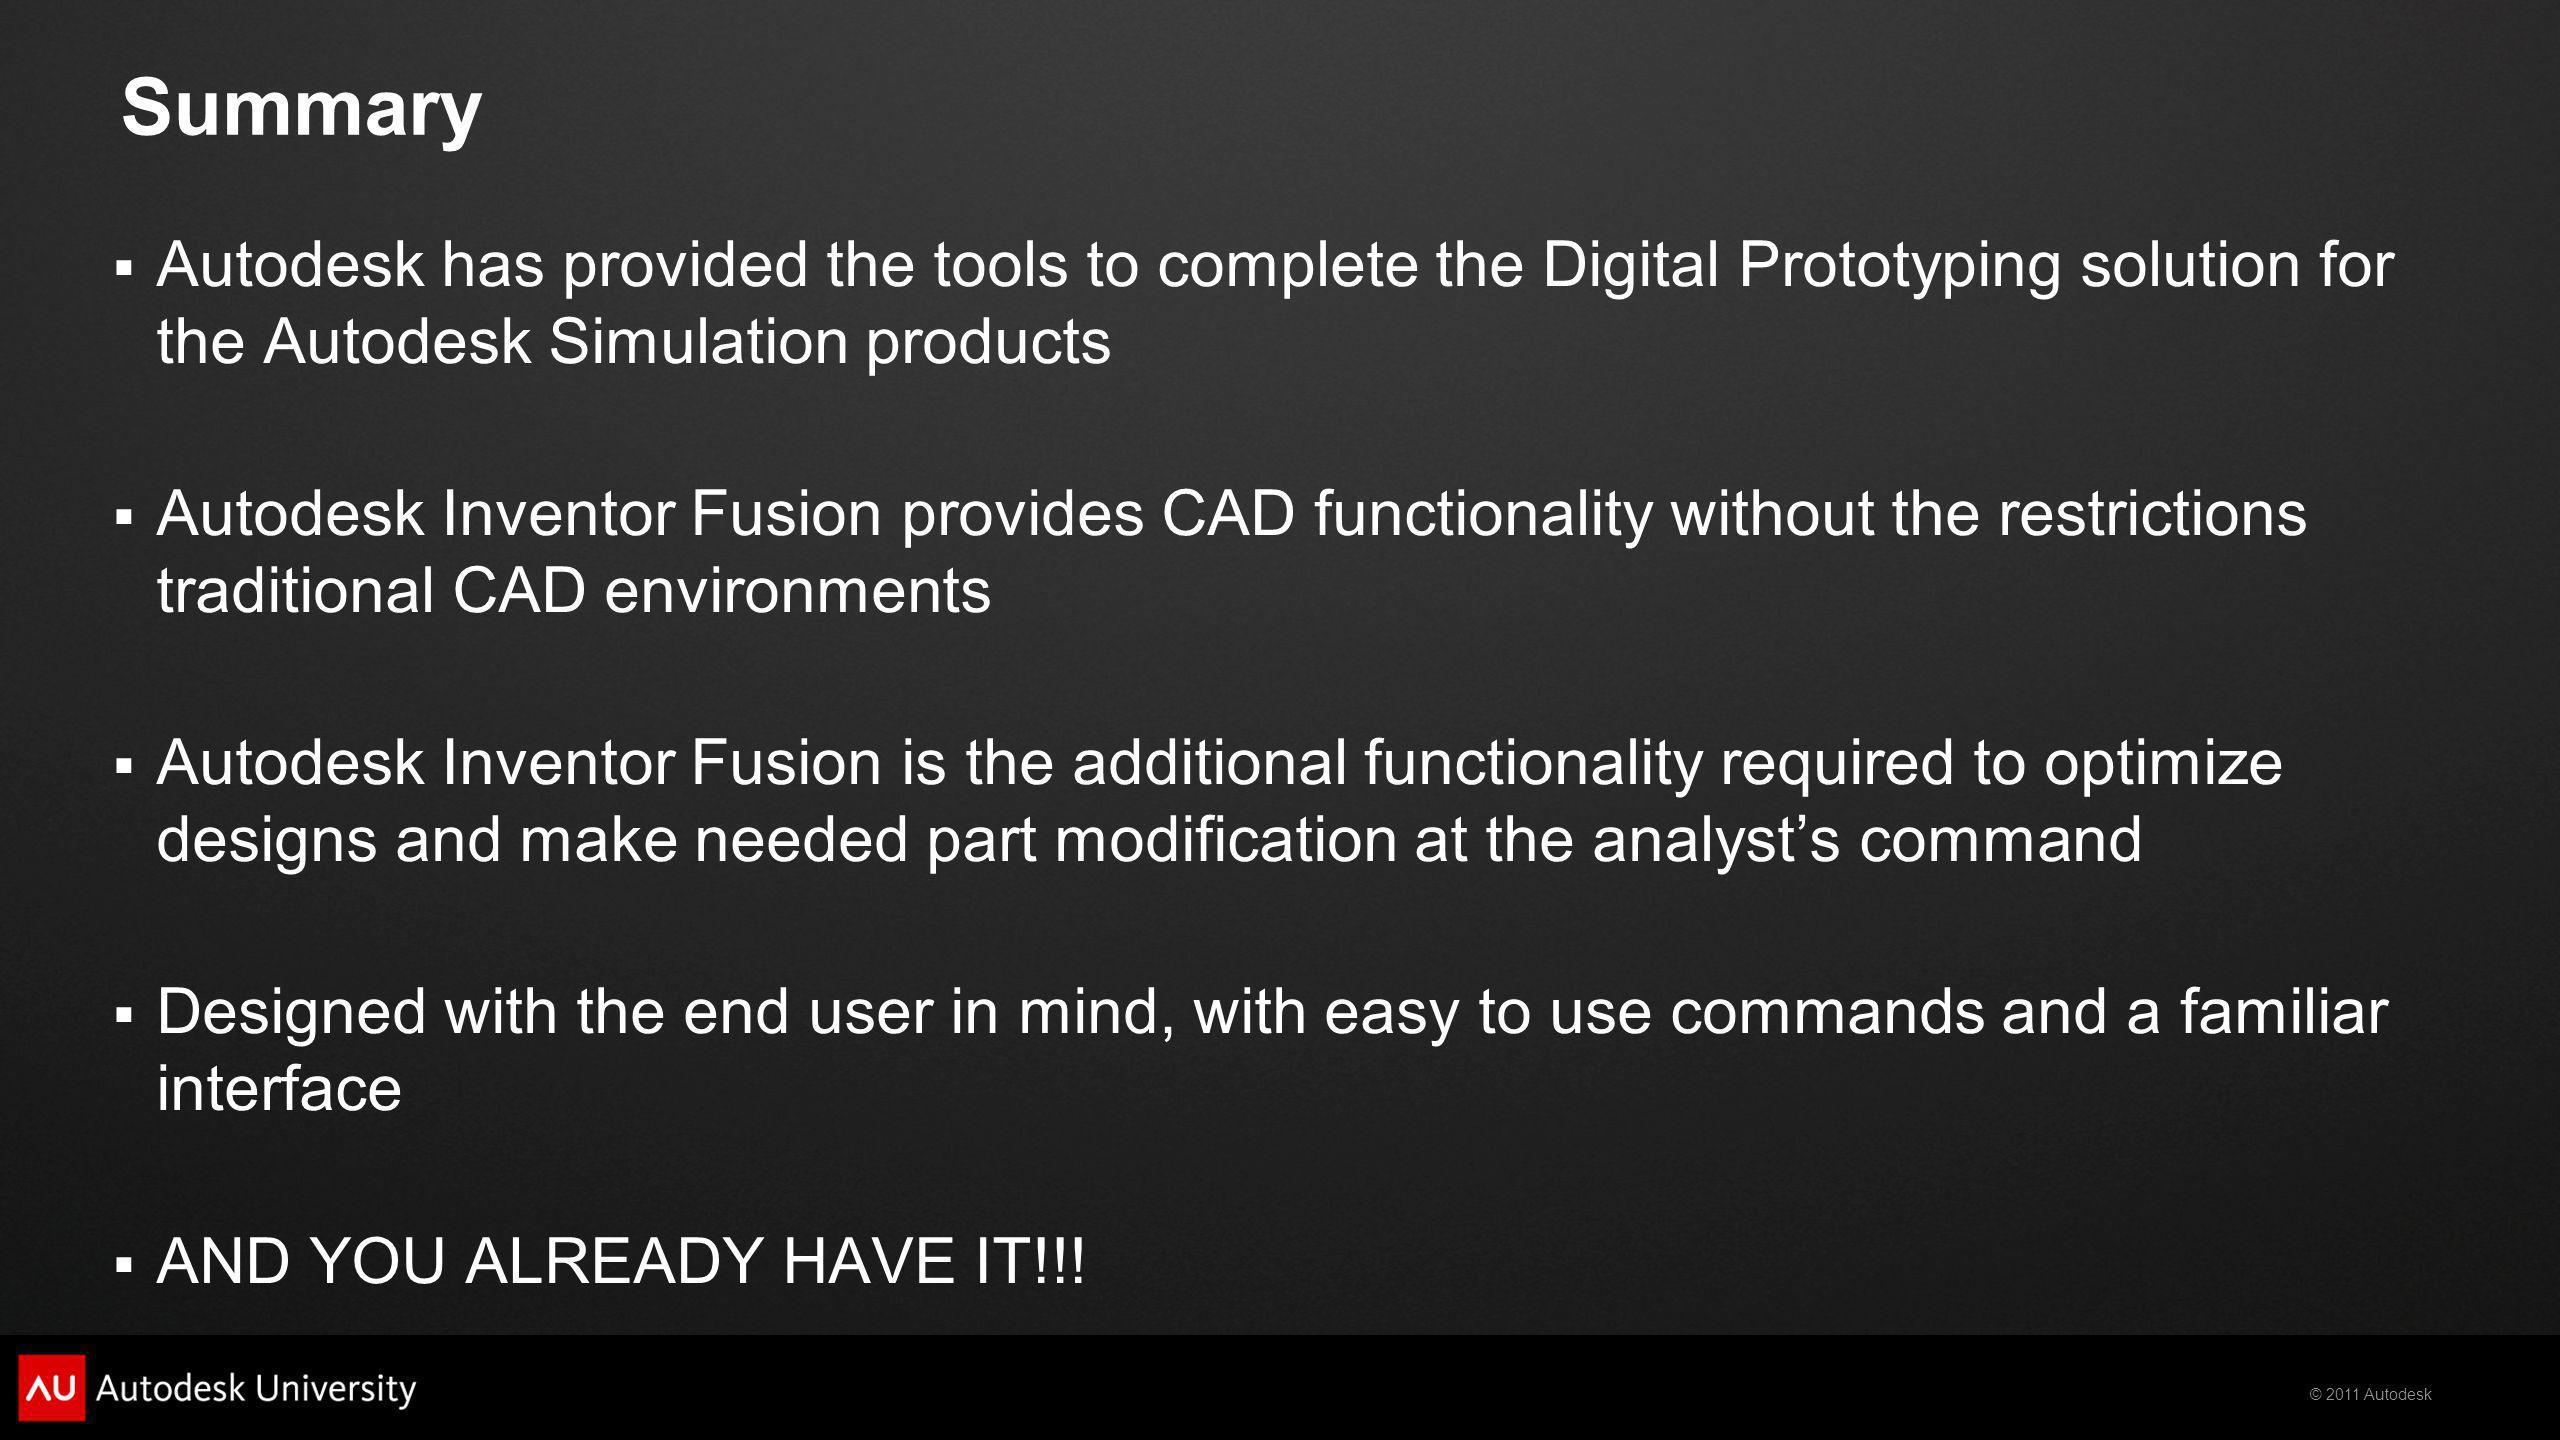 Summary Autodesk has provided the tools to complete the Digital Prototyping solution for the Autodesk Simulation products.